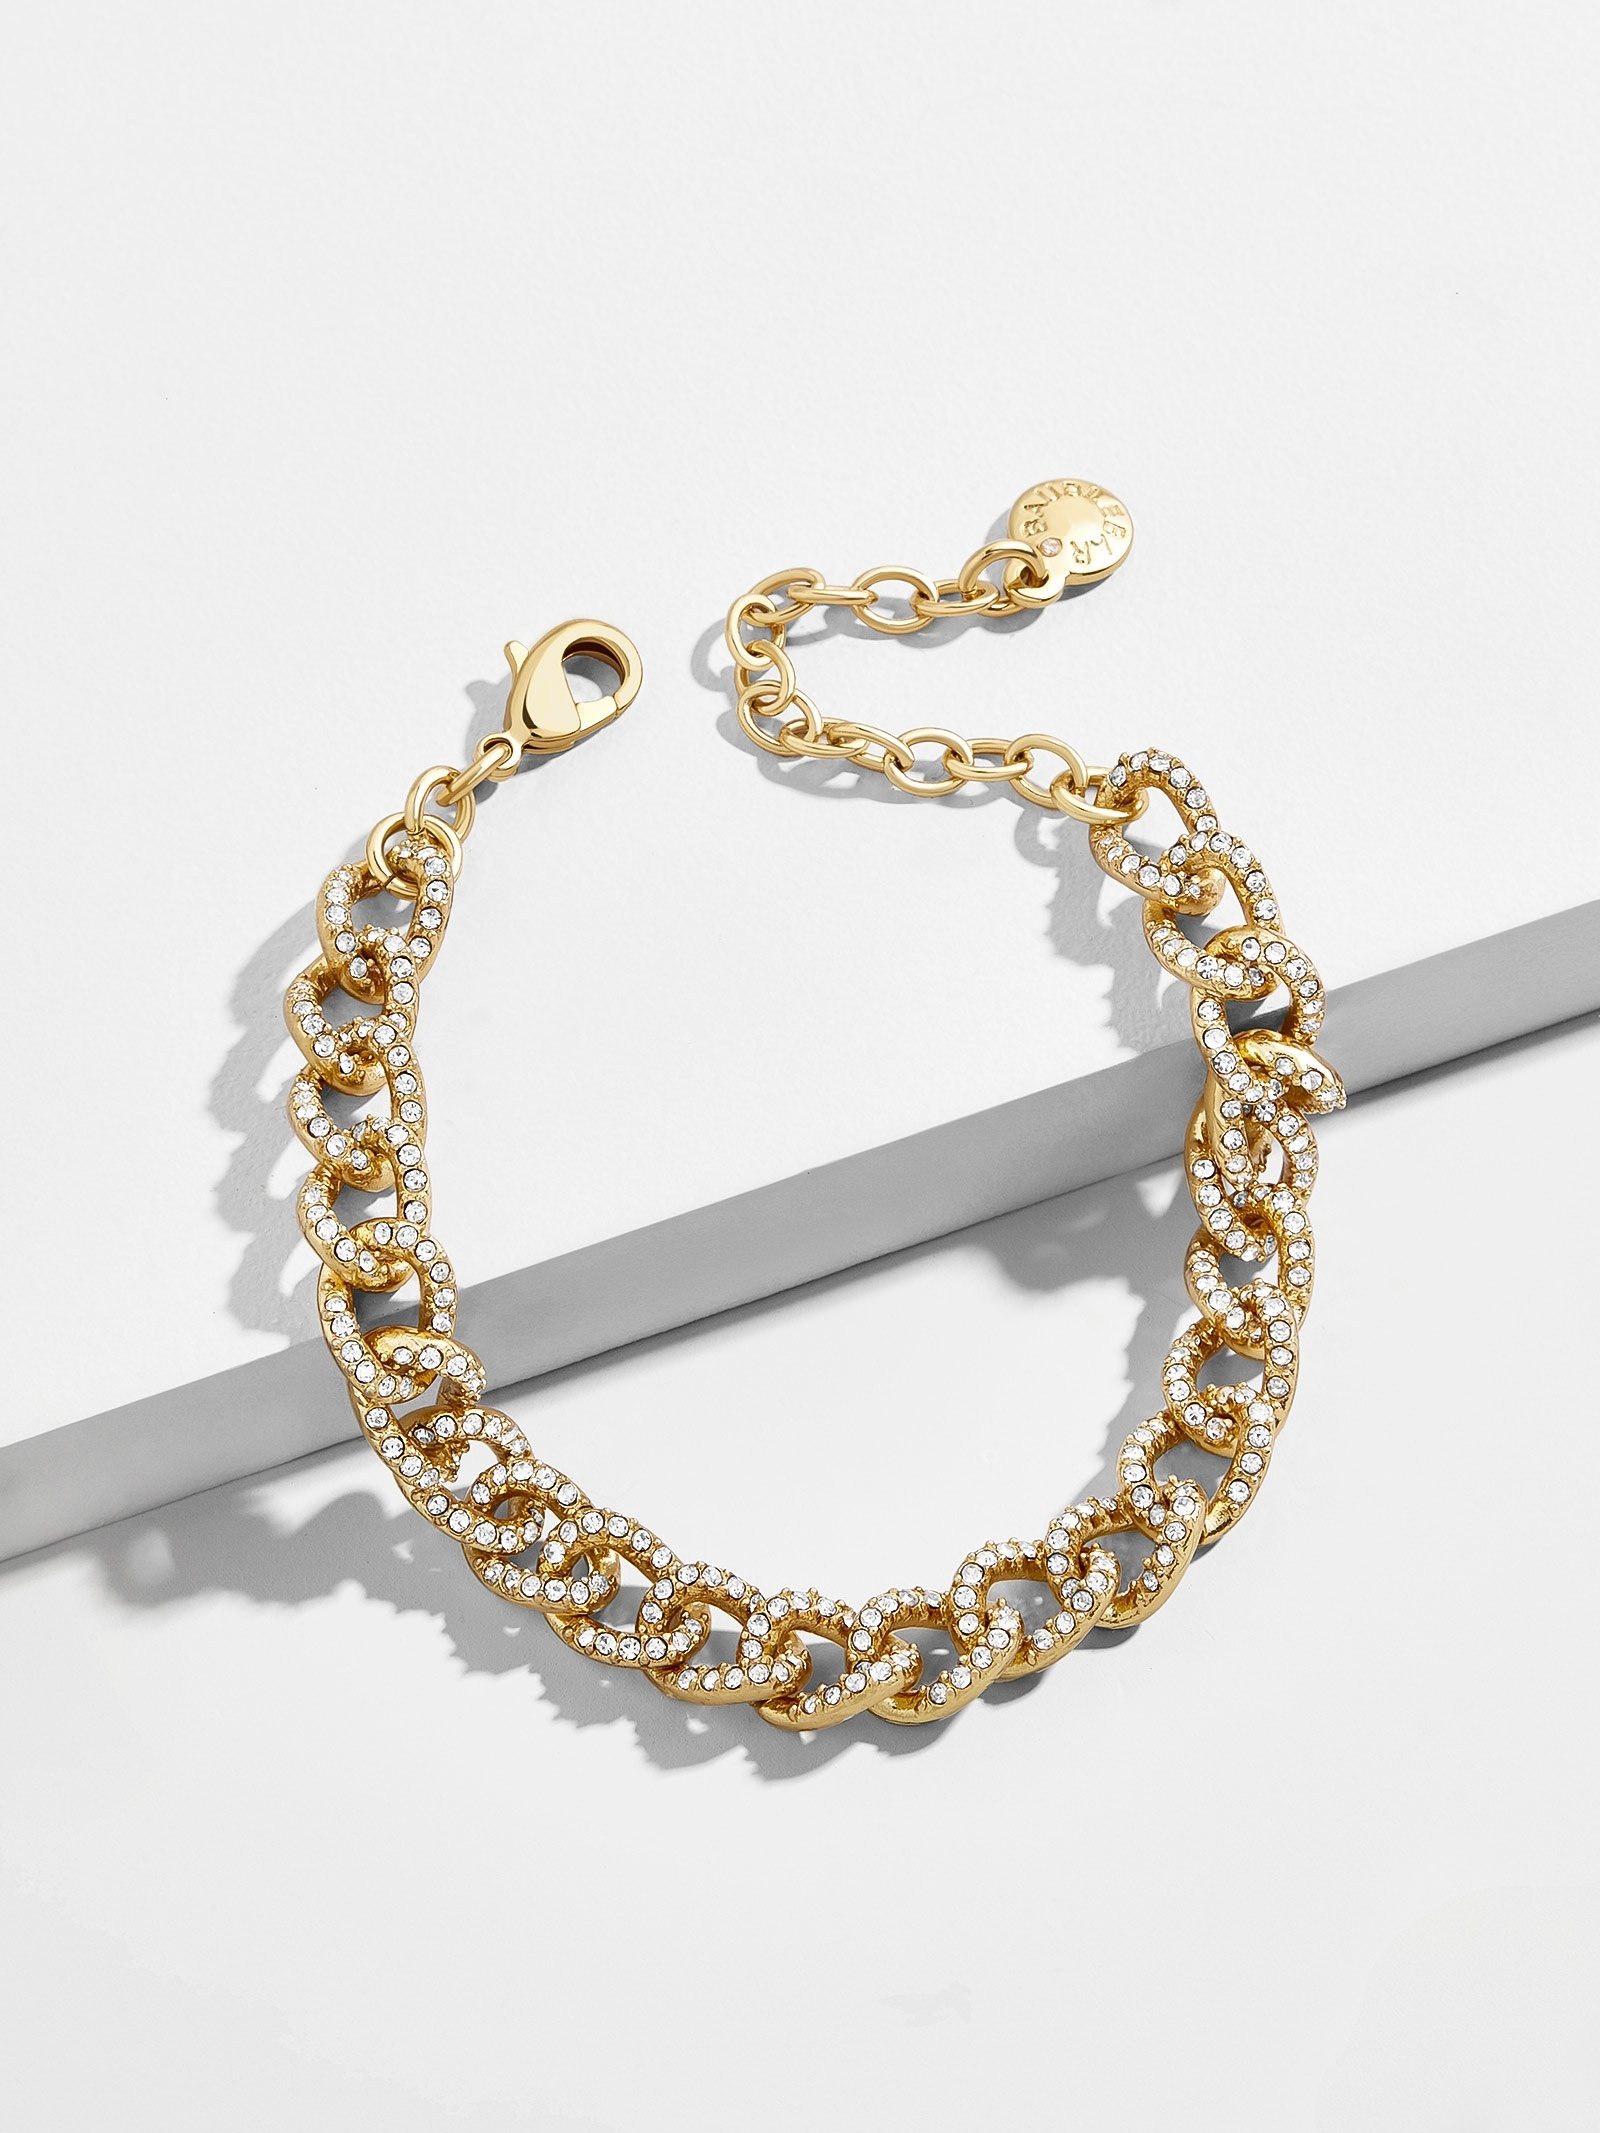 Nererida Linked Bracelet by Baublebar